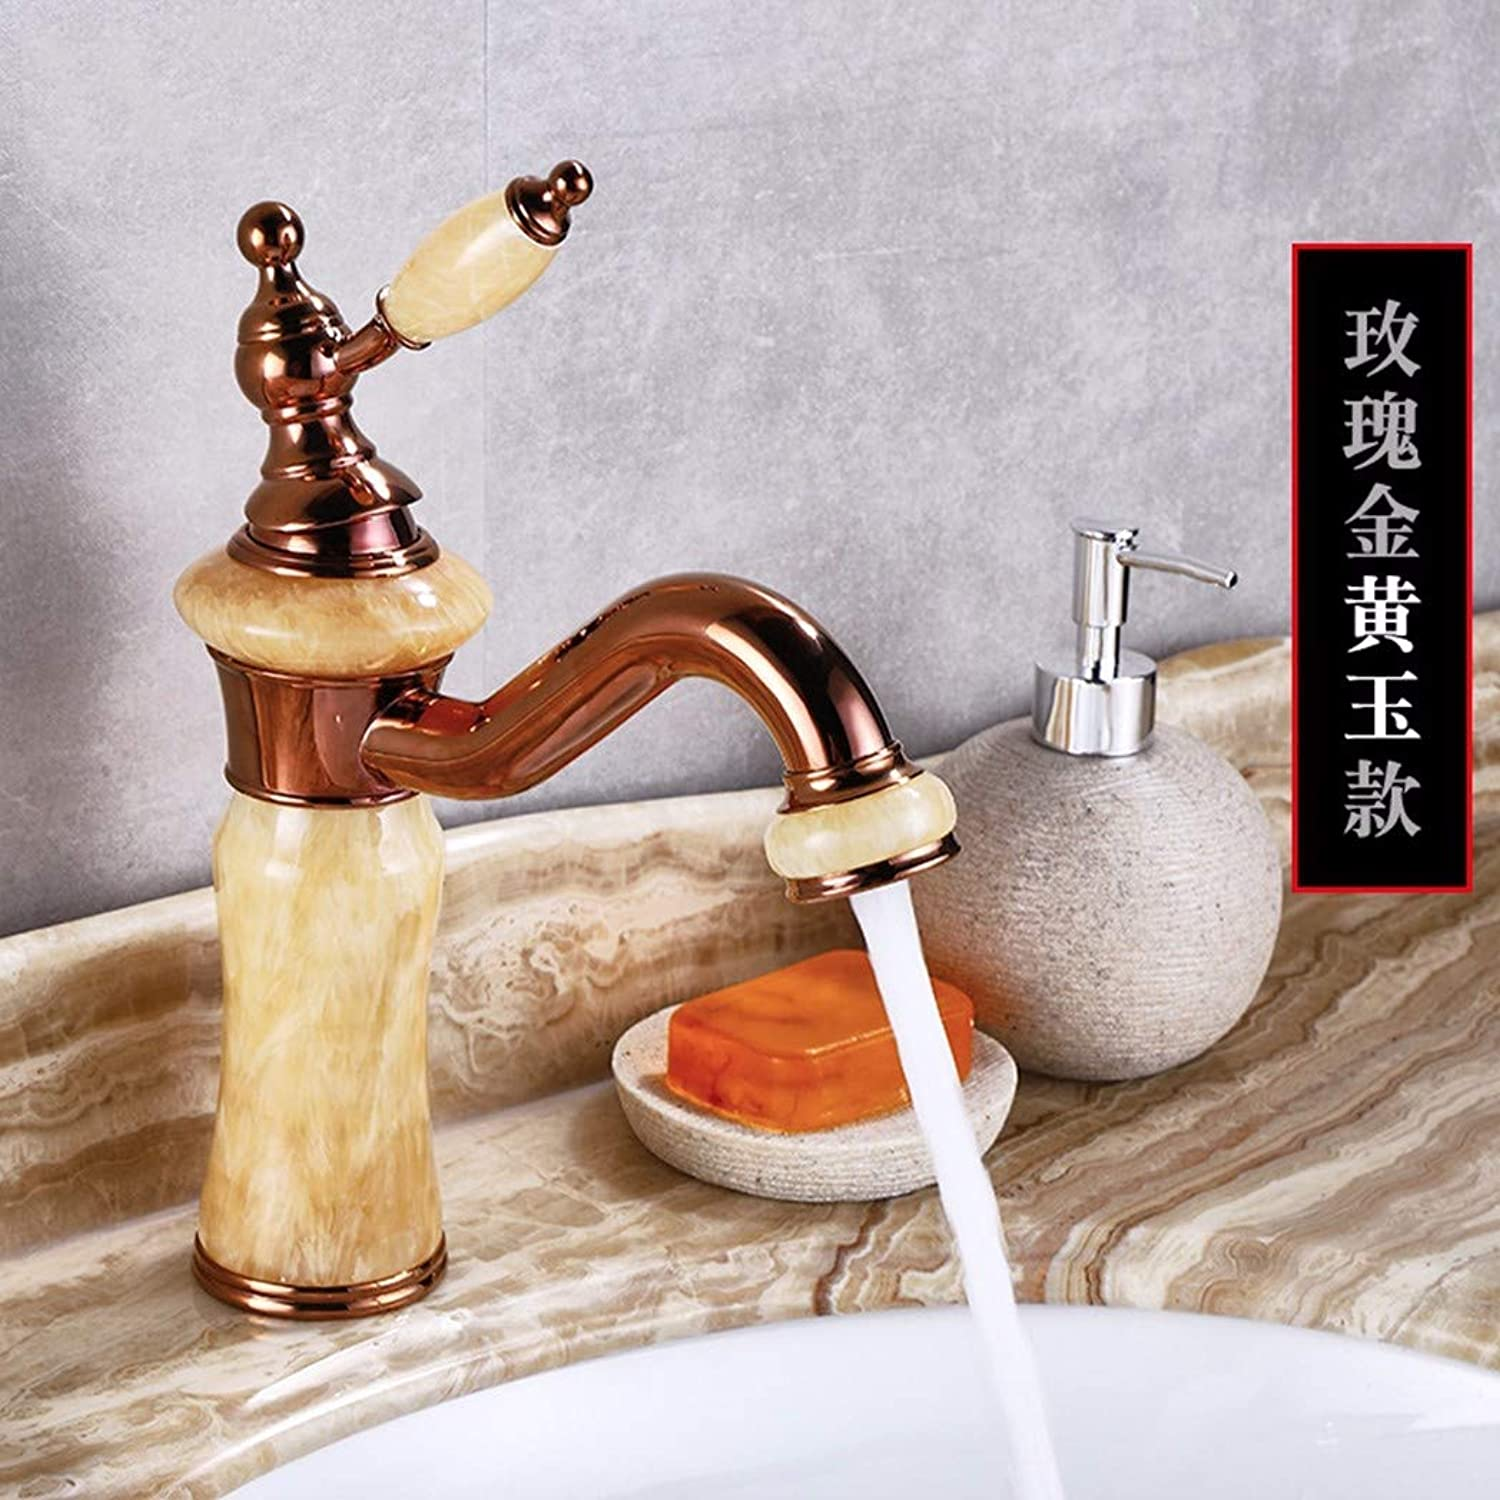 GiiWii Natural Jade Faucet Retro Copper redary Used in Bathroom Washbasin Cold and Hot Water Mixing,pink golden Yellow Jade